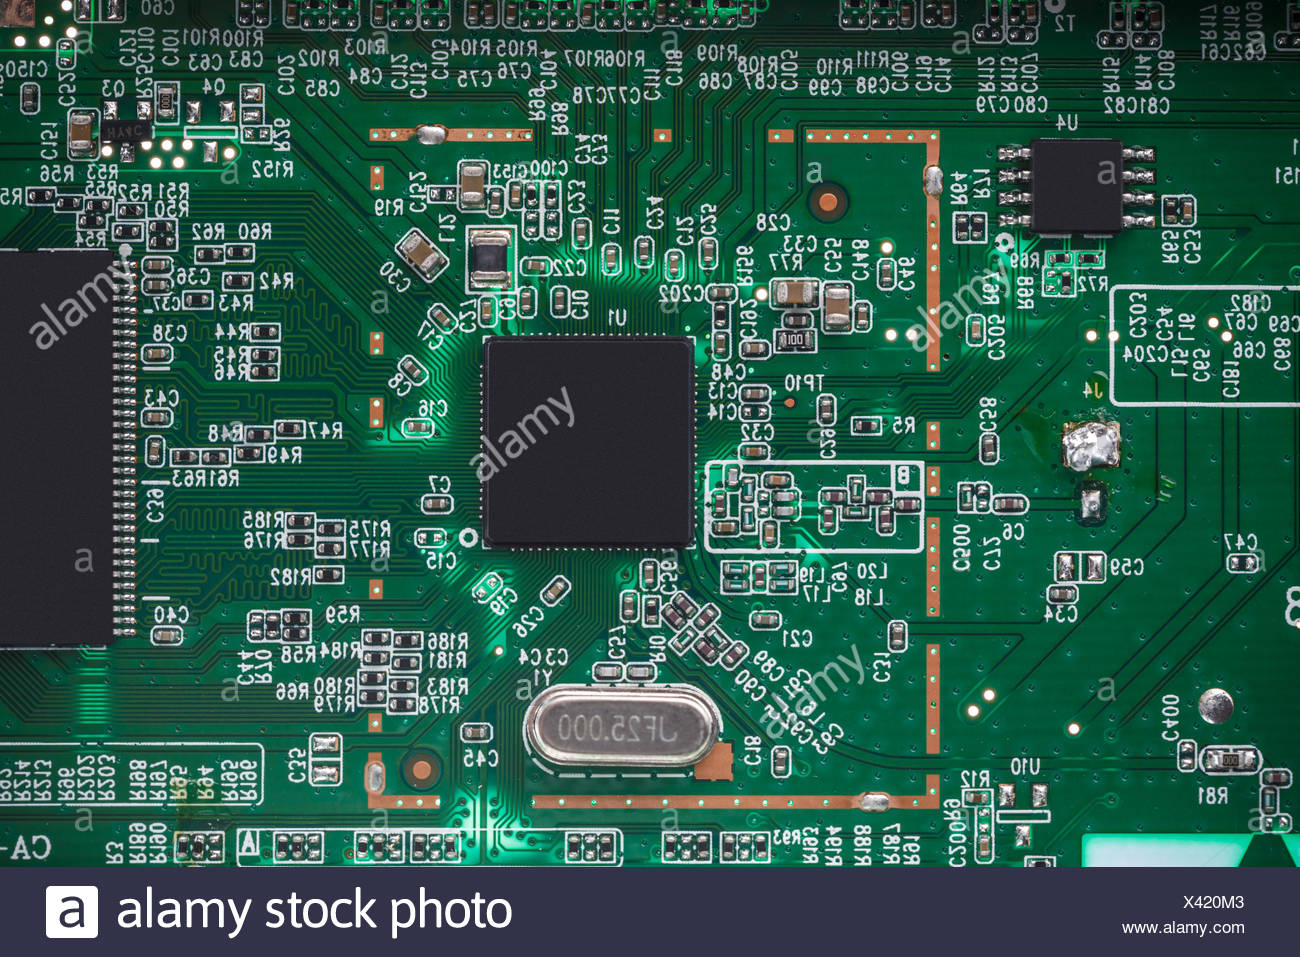 electronic cpu stock photos \u0026 electronic cpu stock images alamyWhite Gloved Hands And Brush Cleaning Computer Circuit Board Cpu Stock #13